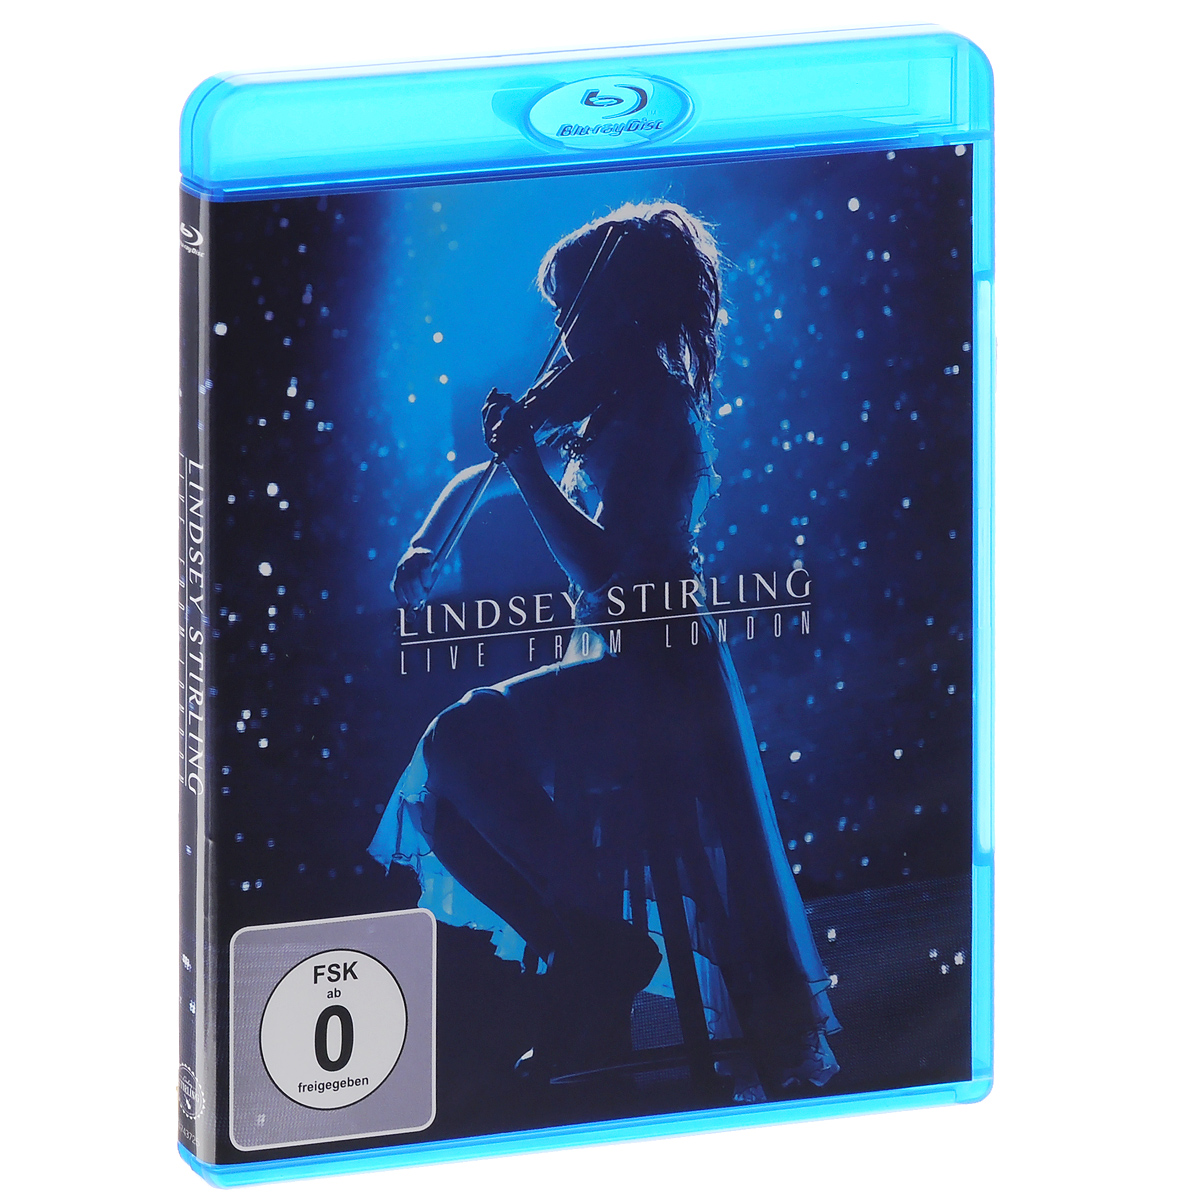 Lindsey Stirling: Live From London (Blu-ray) francis rossi live from st luke s london blu ray